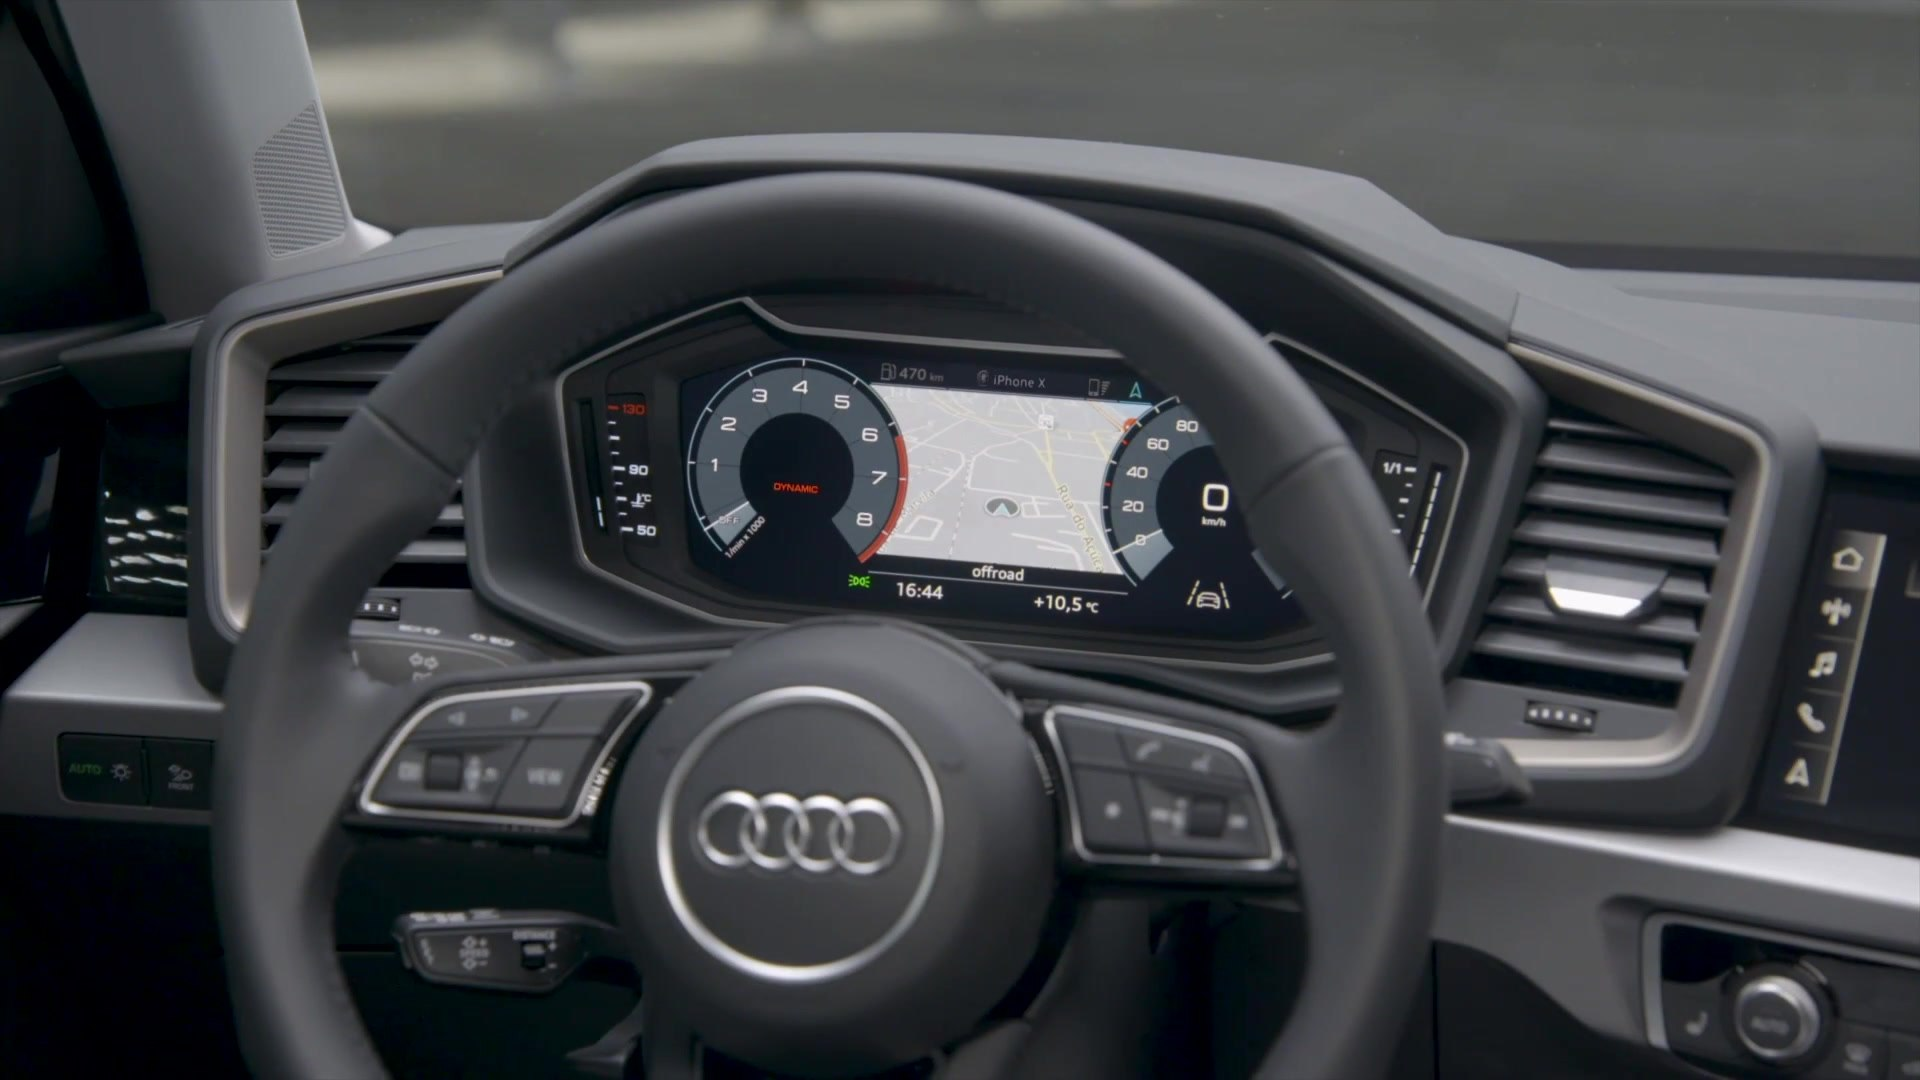 2018 Audi A1 Interior Design In Chronos Grey